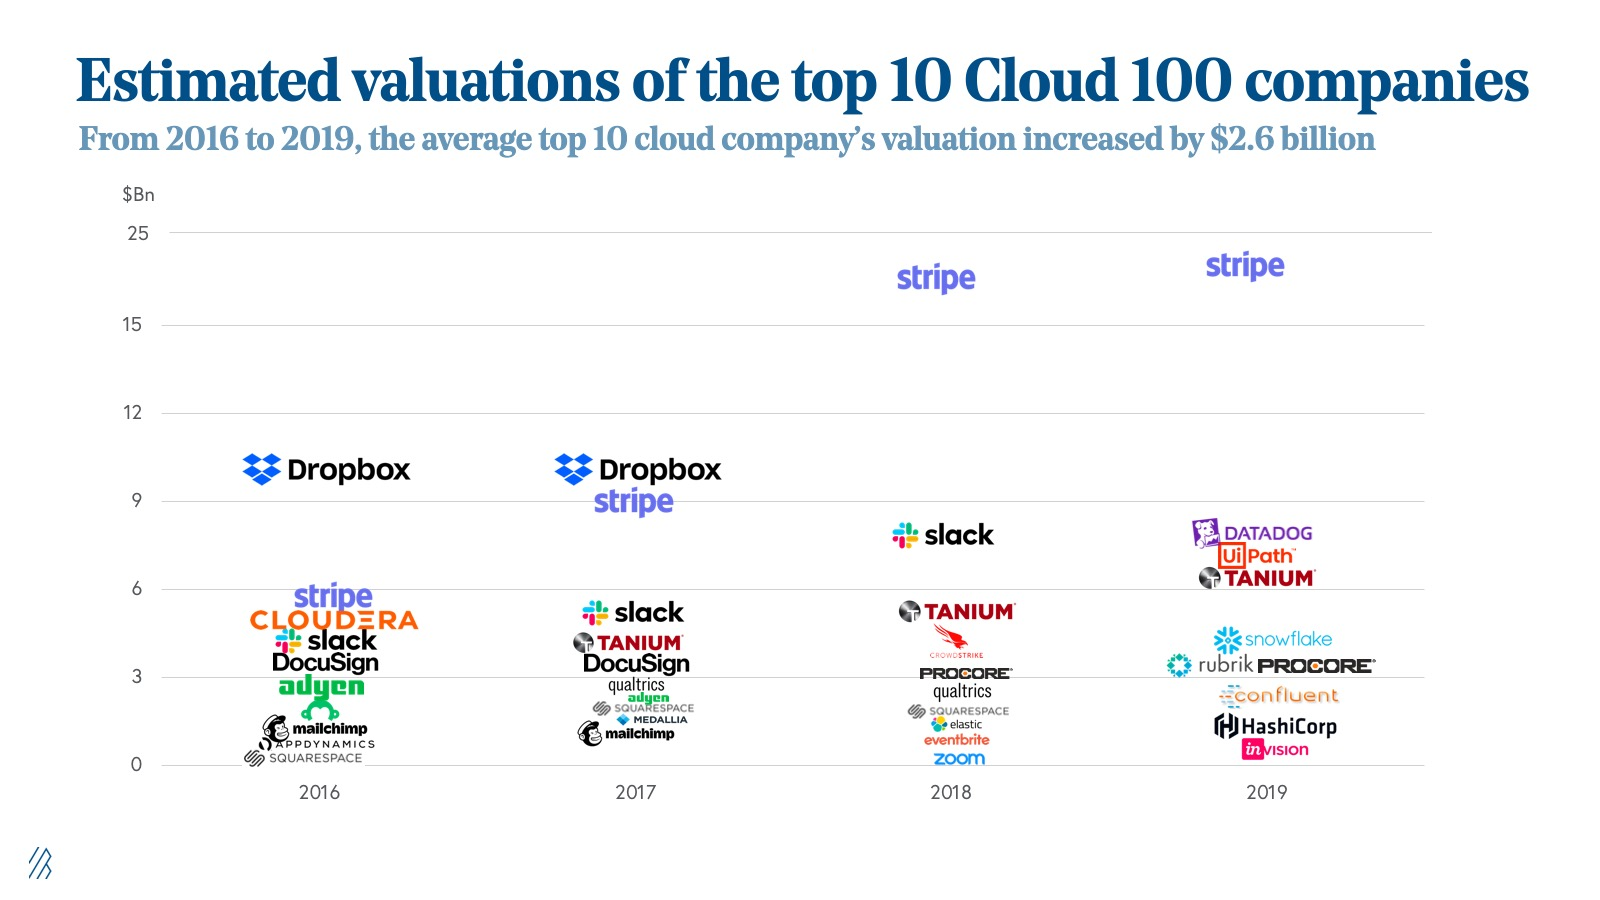 estimated valuations of the top 10 cloud 100 companies